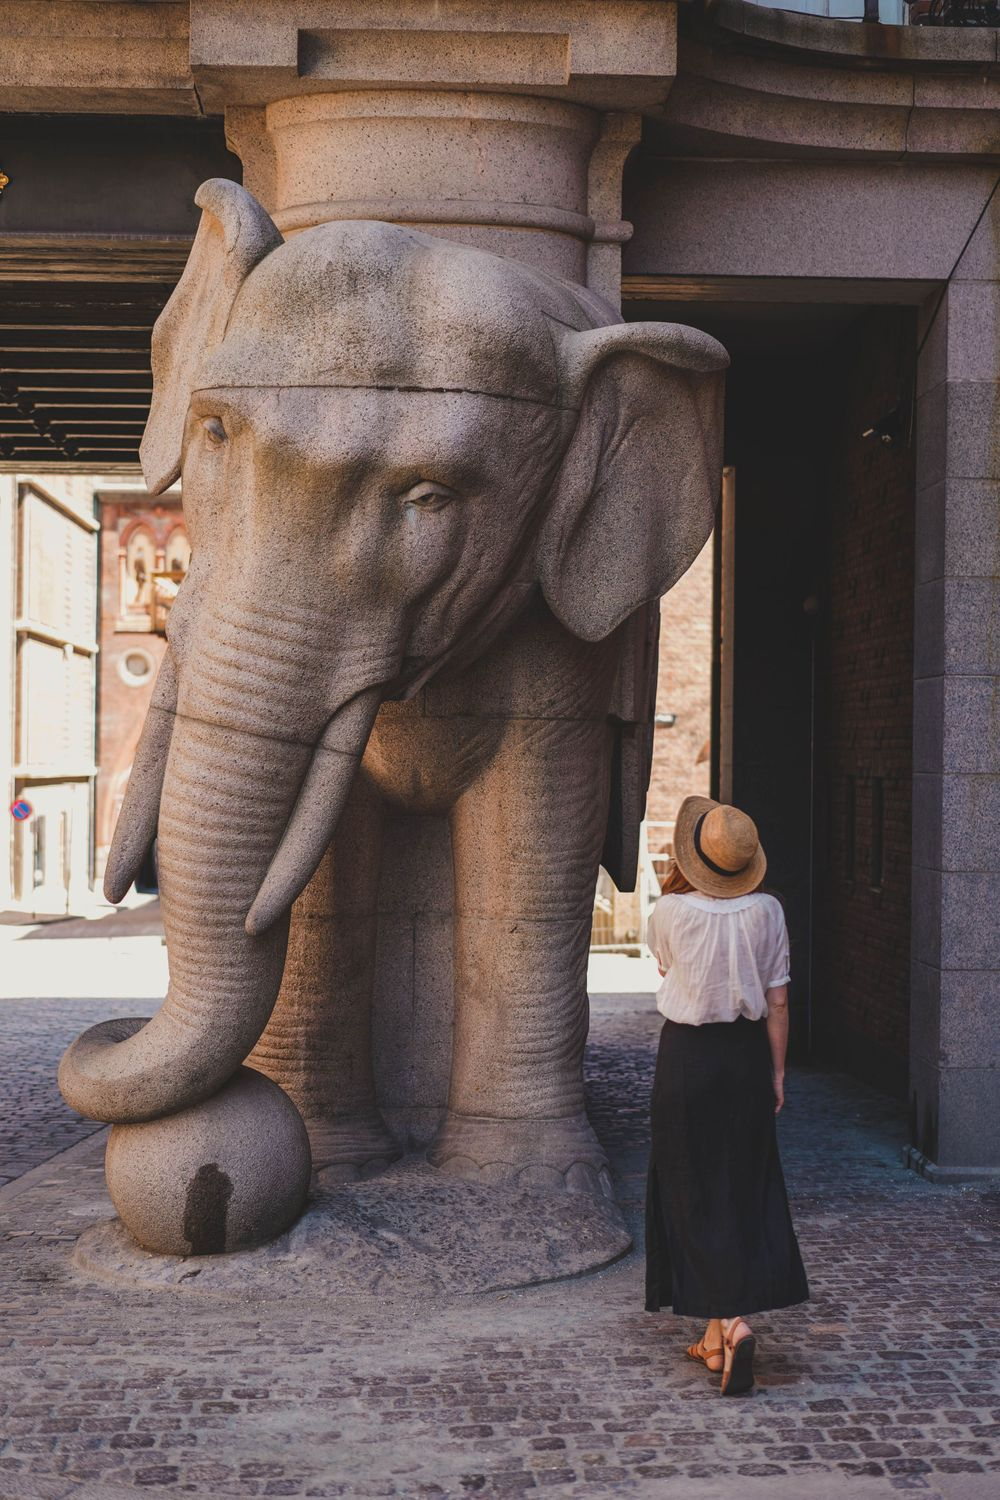 wonam in a white shirt and a straw hat looking at the giant elephant statue